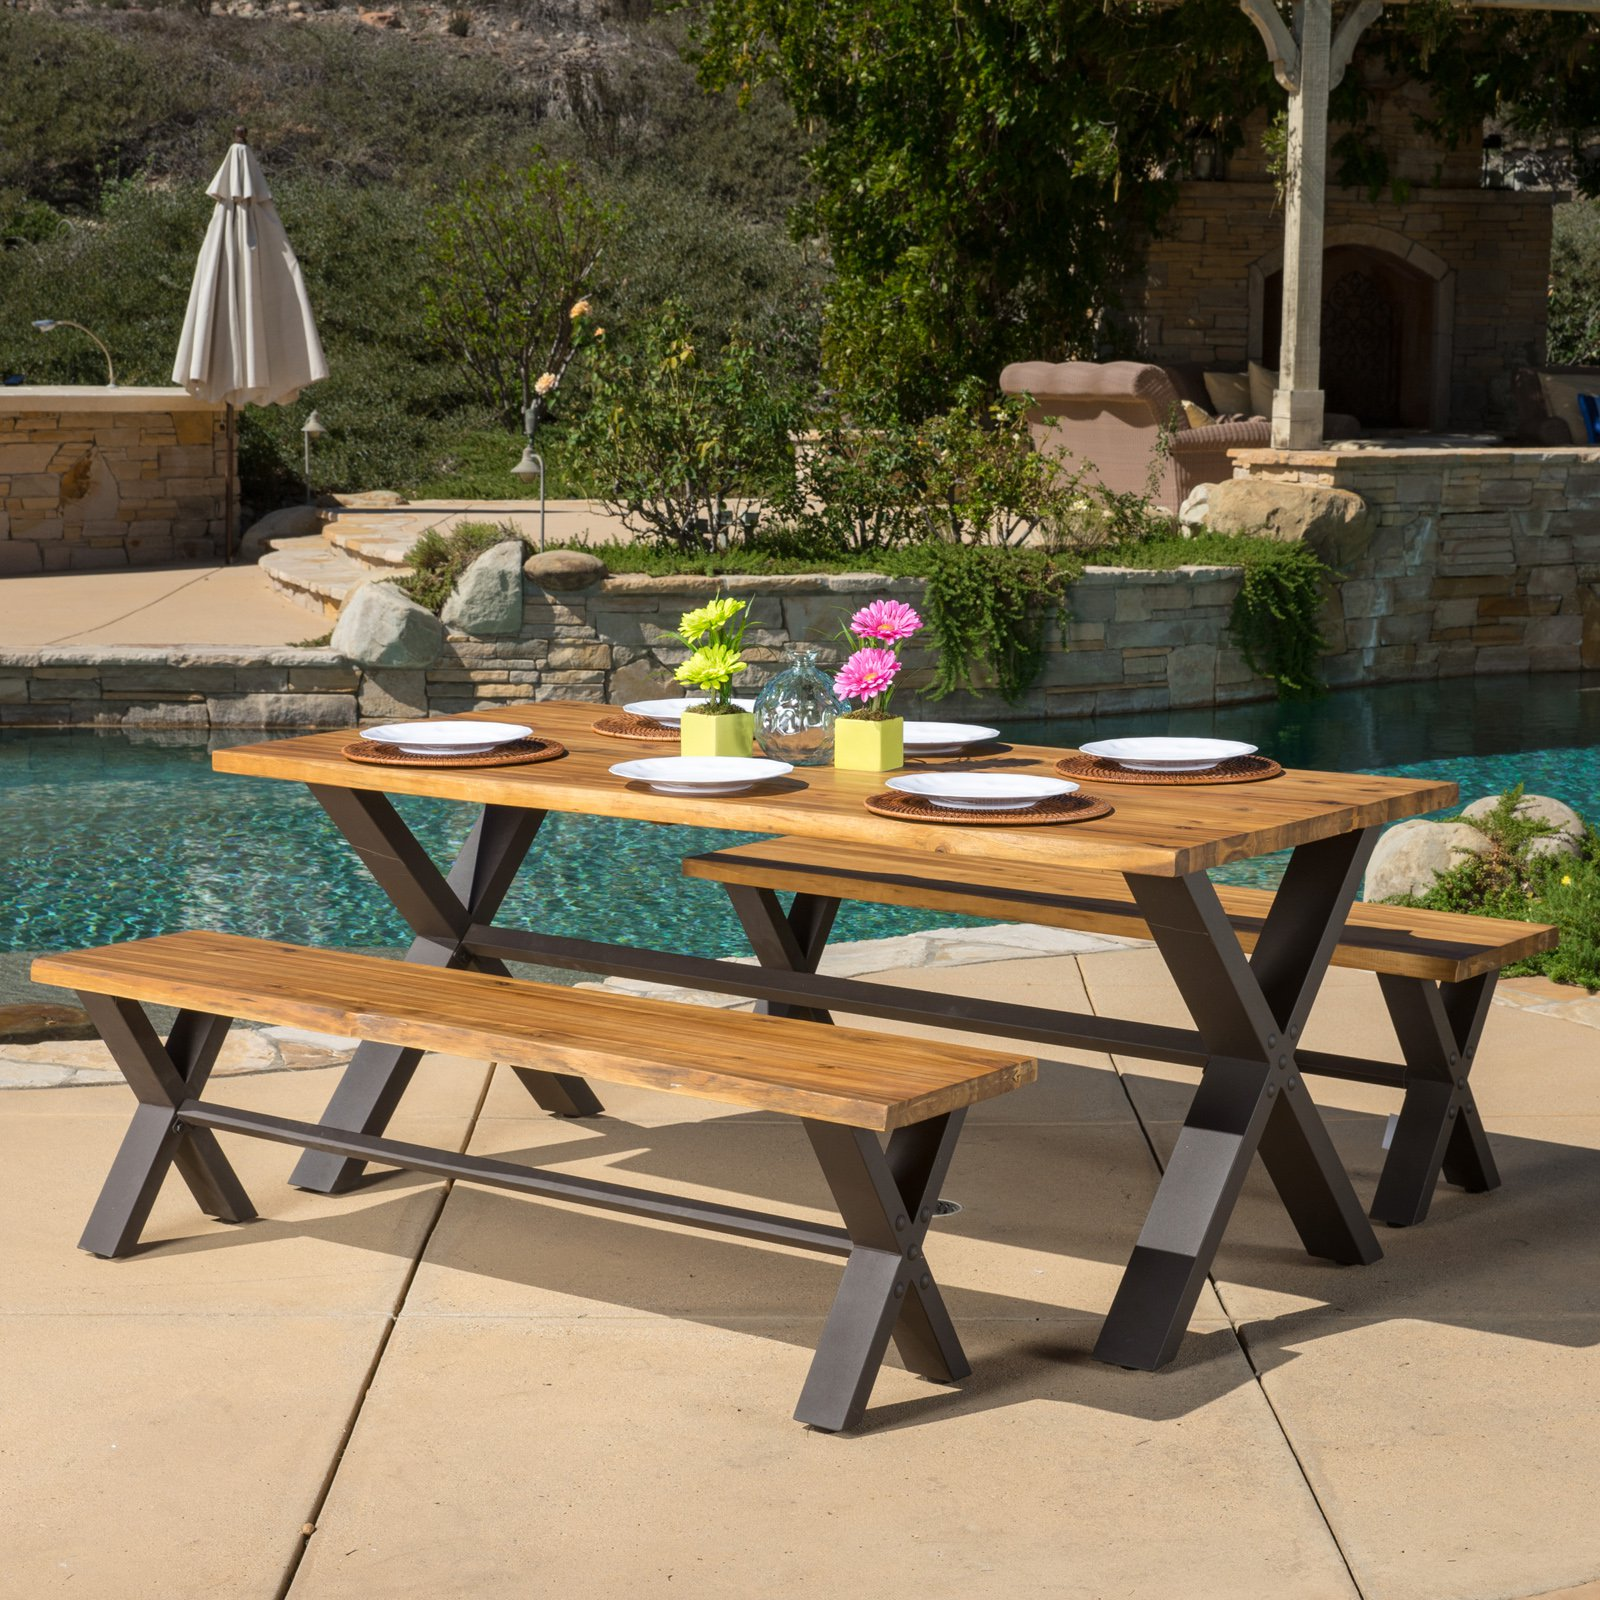 Brasilia 3 Piece Picnic Table Set by Best Selling Home Decor Furniture LLC